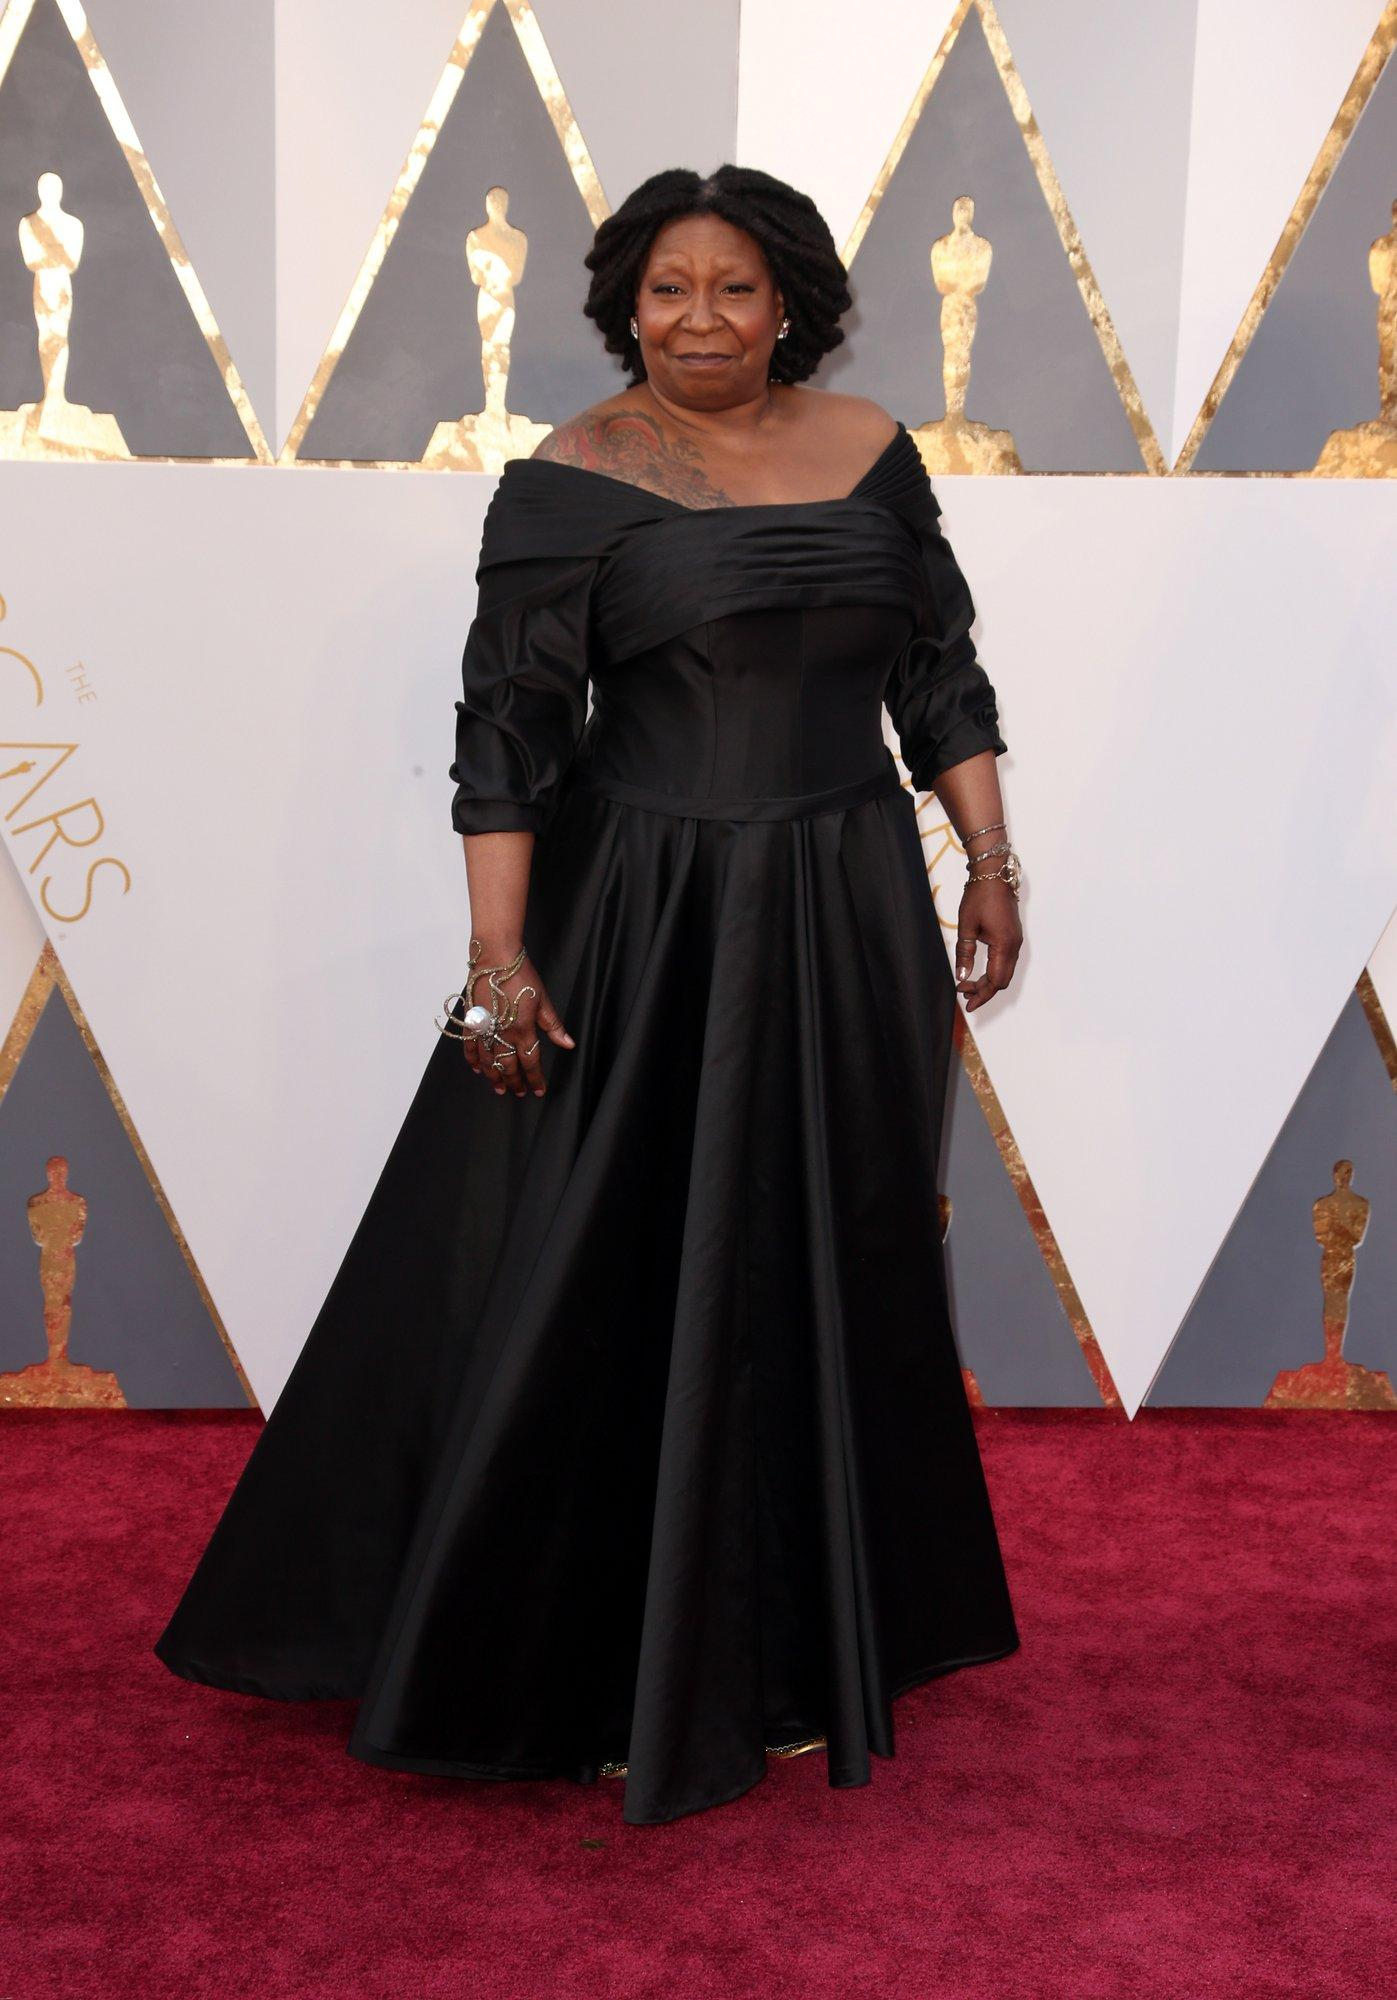 Whoopi Goldberg Oscars 2016 wallpaper 2018 in Movies